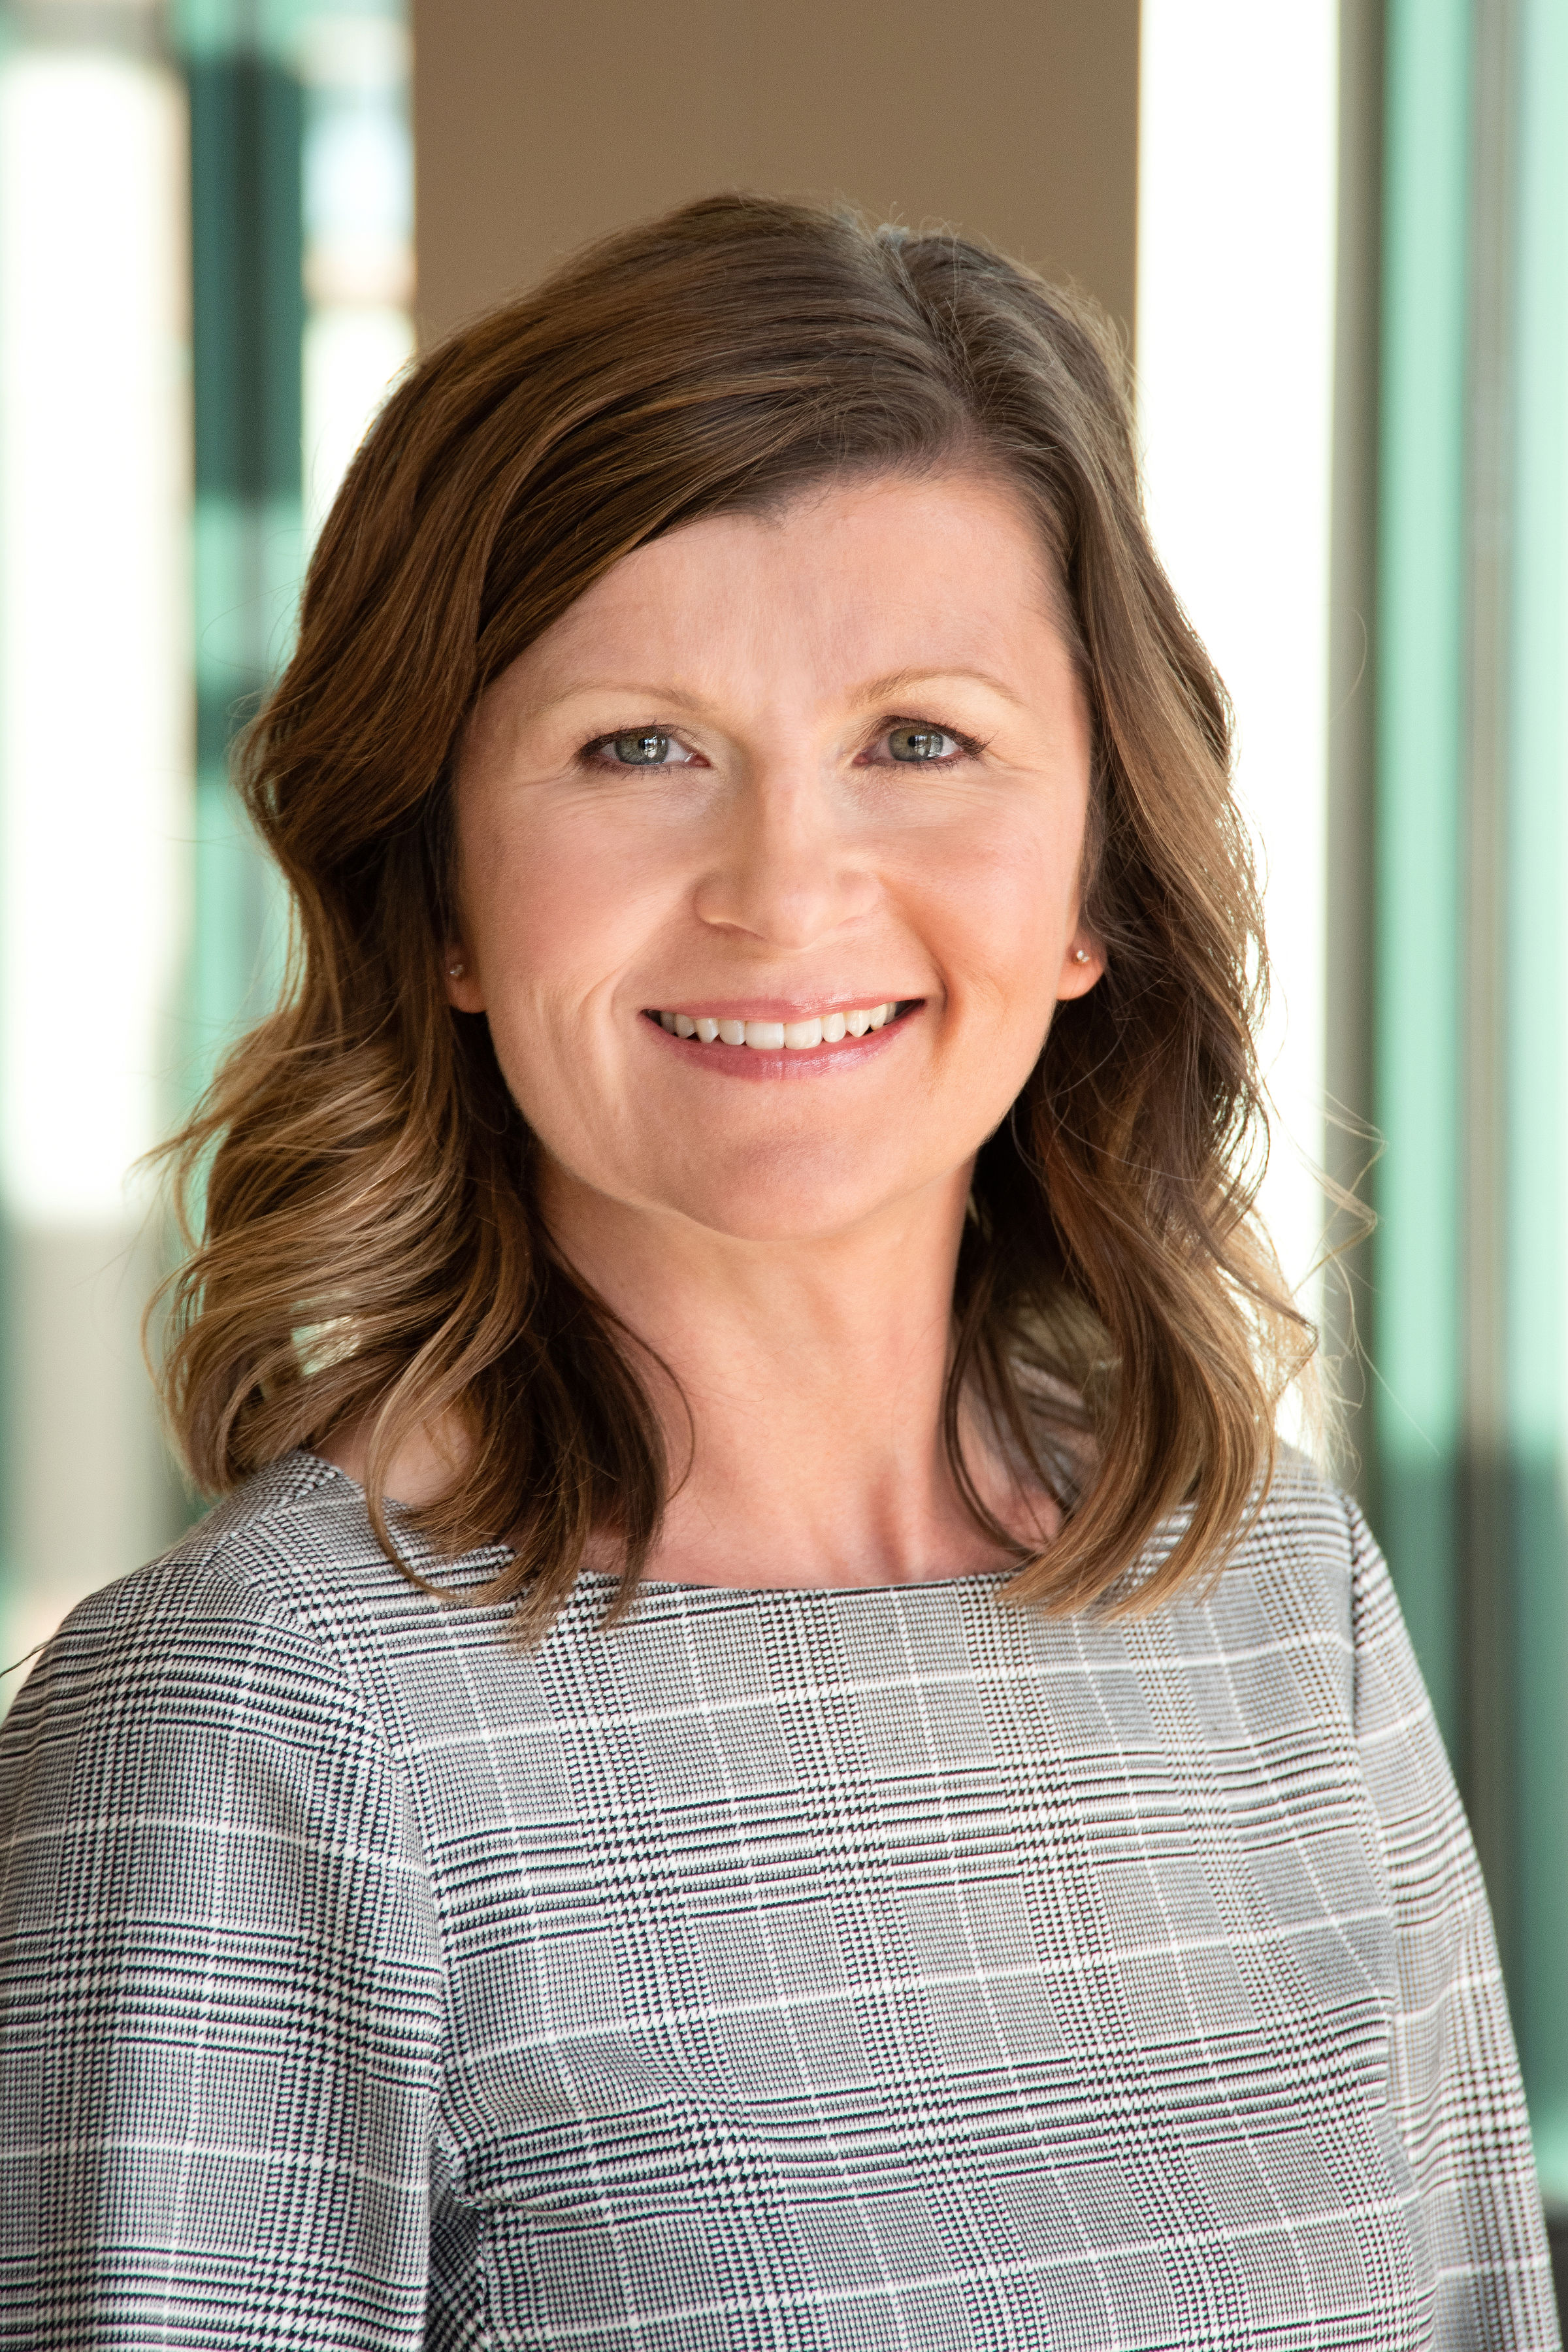 Manufacturing during COVID19 Q&A with Bobcat Company Public Affairs Director, Stacey Breuer